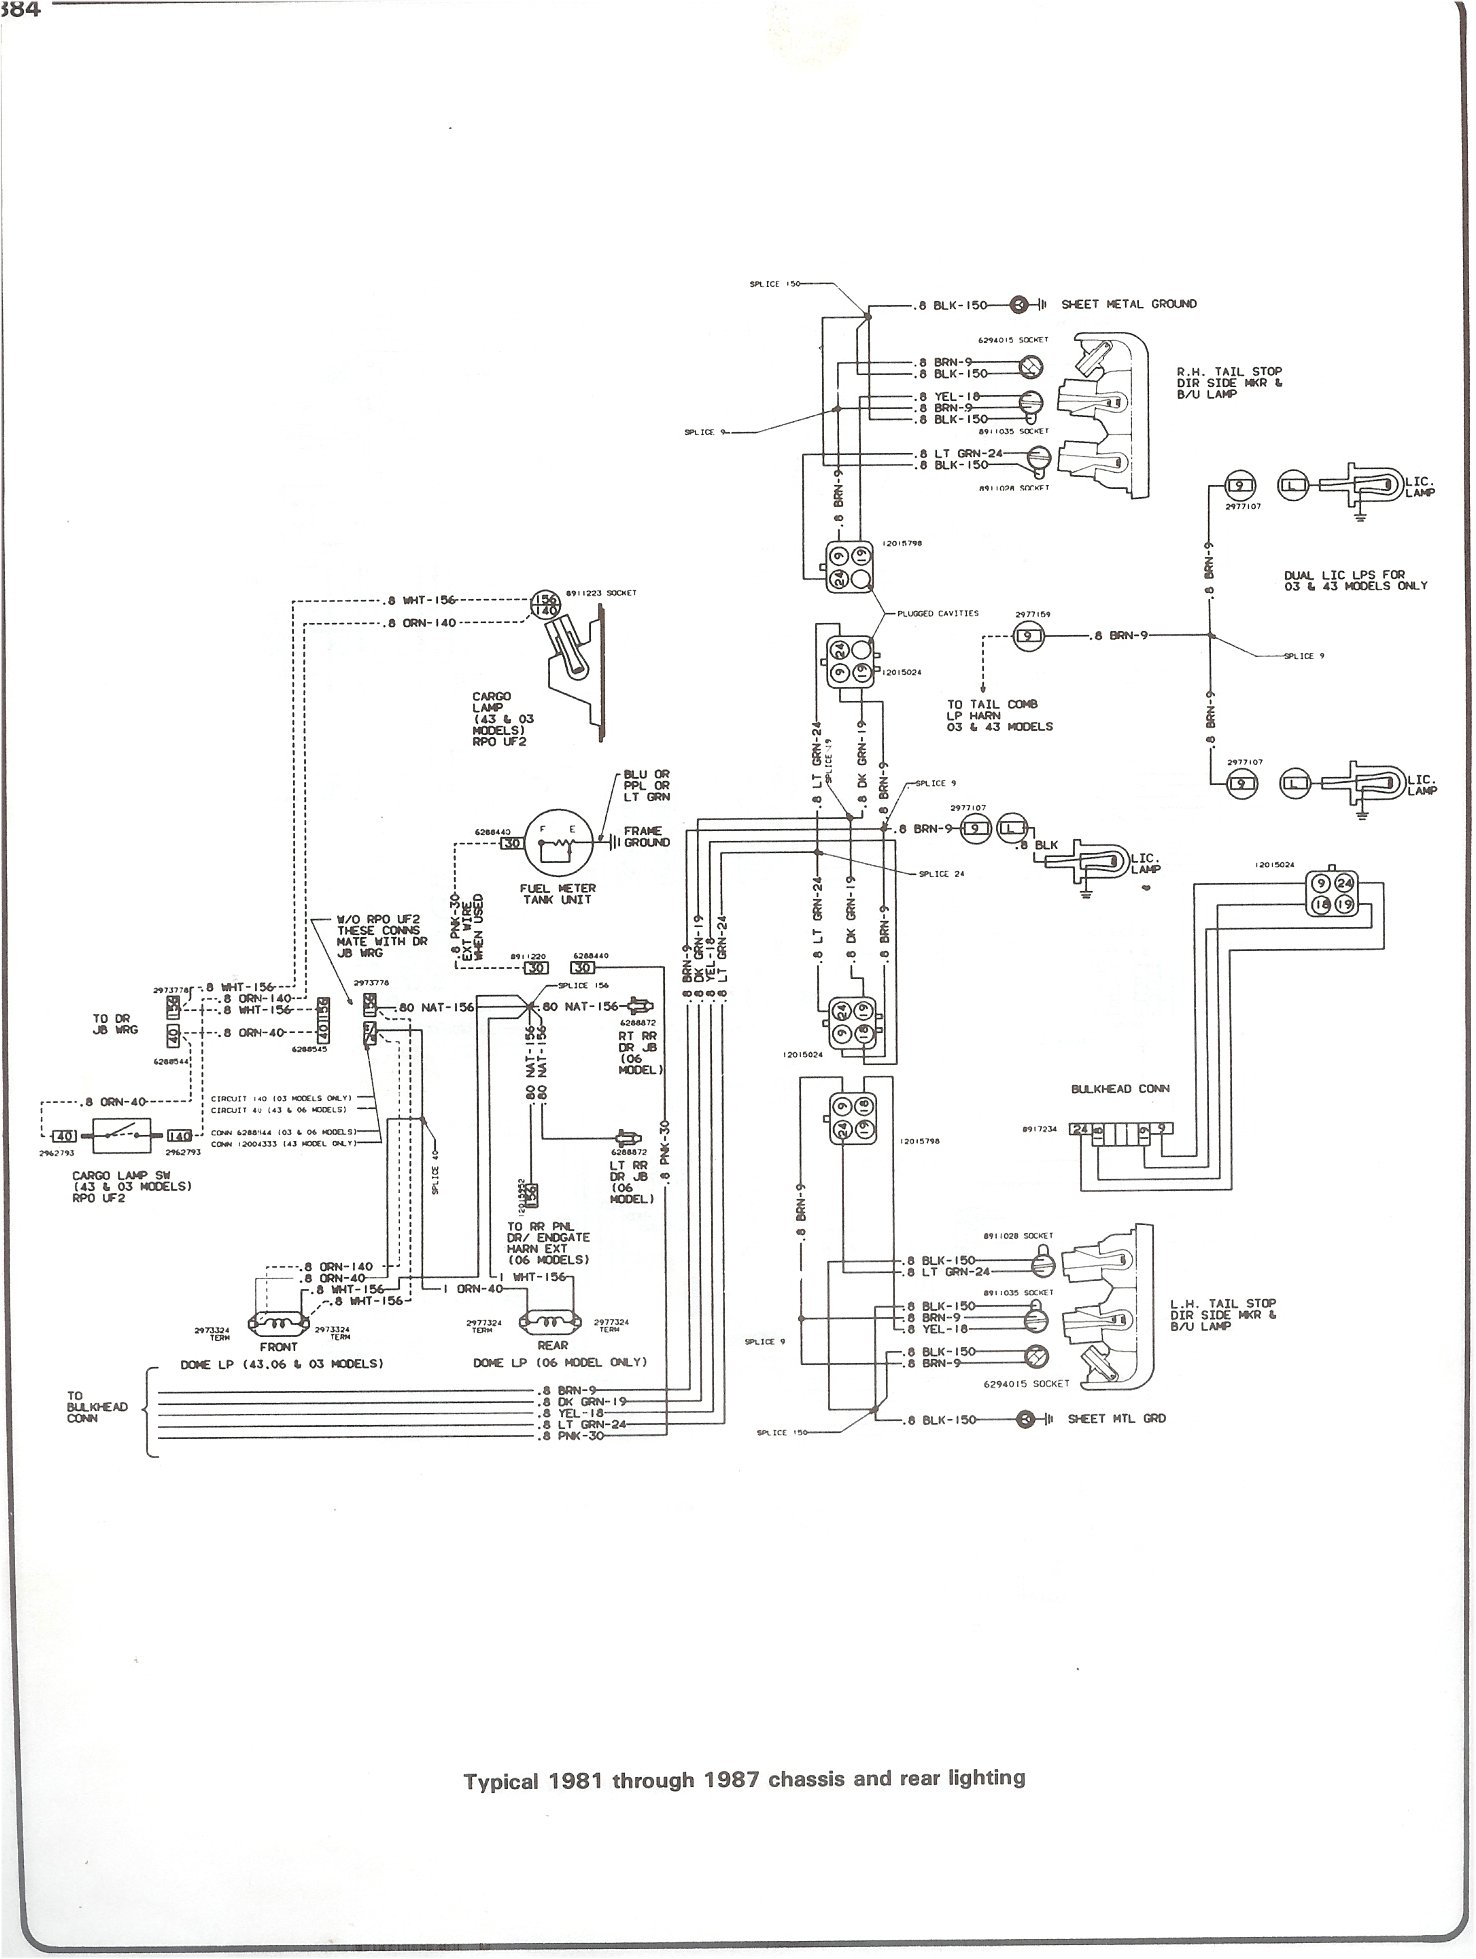 complete 73 87 wiring diagrams Chevy Truck Fuse Diagram  2010 Silverado Fuse Diagram DeLorean Fuse Diagram Scion Fuse Diagram